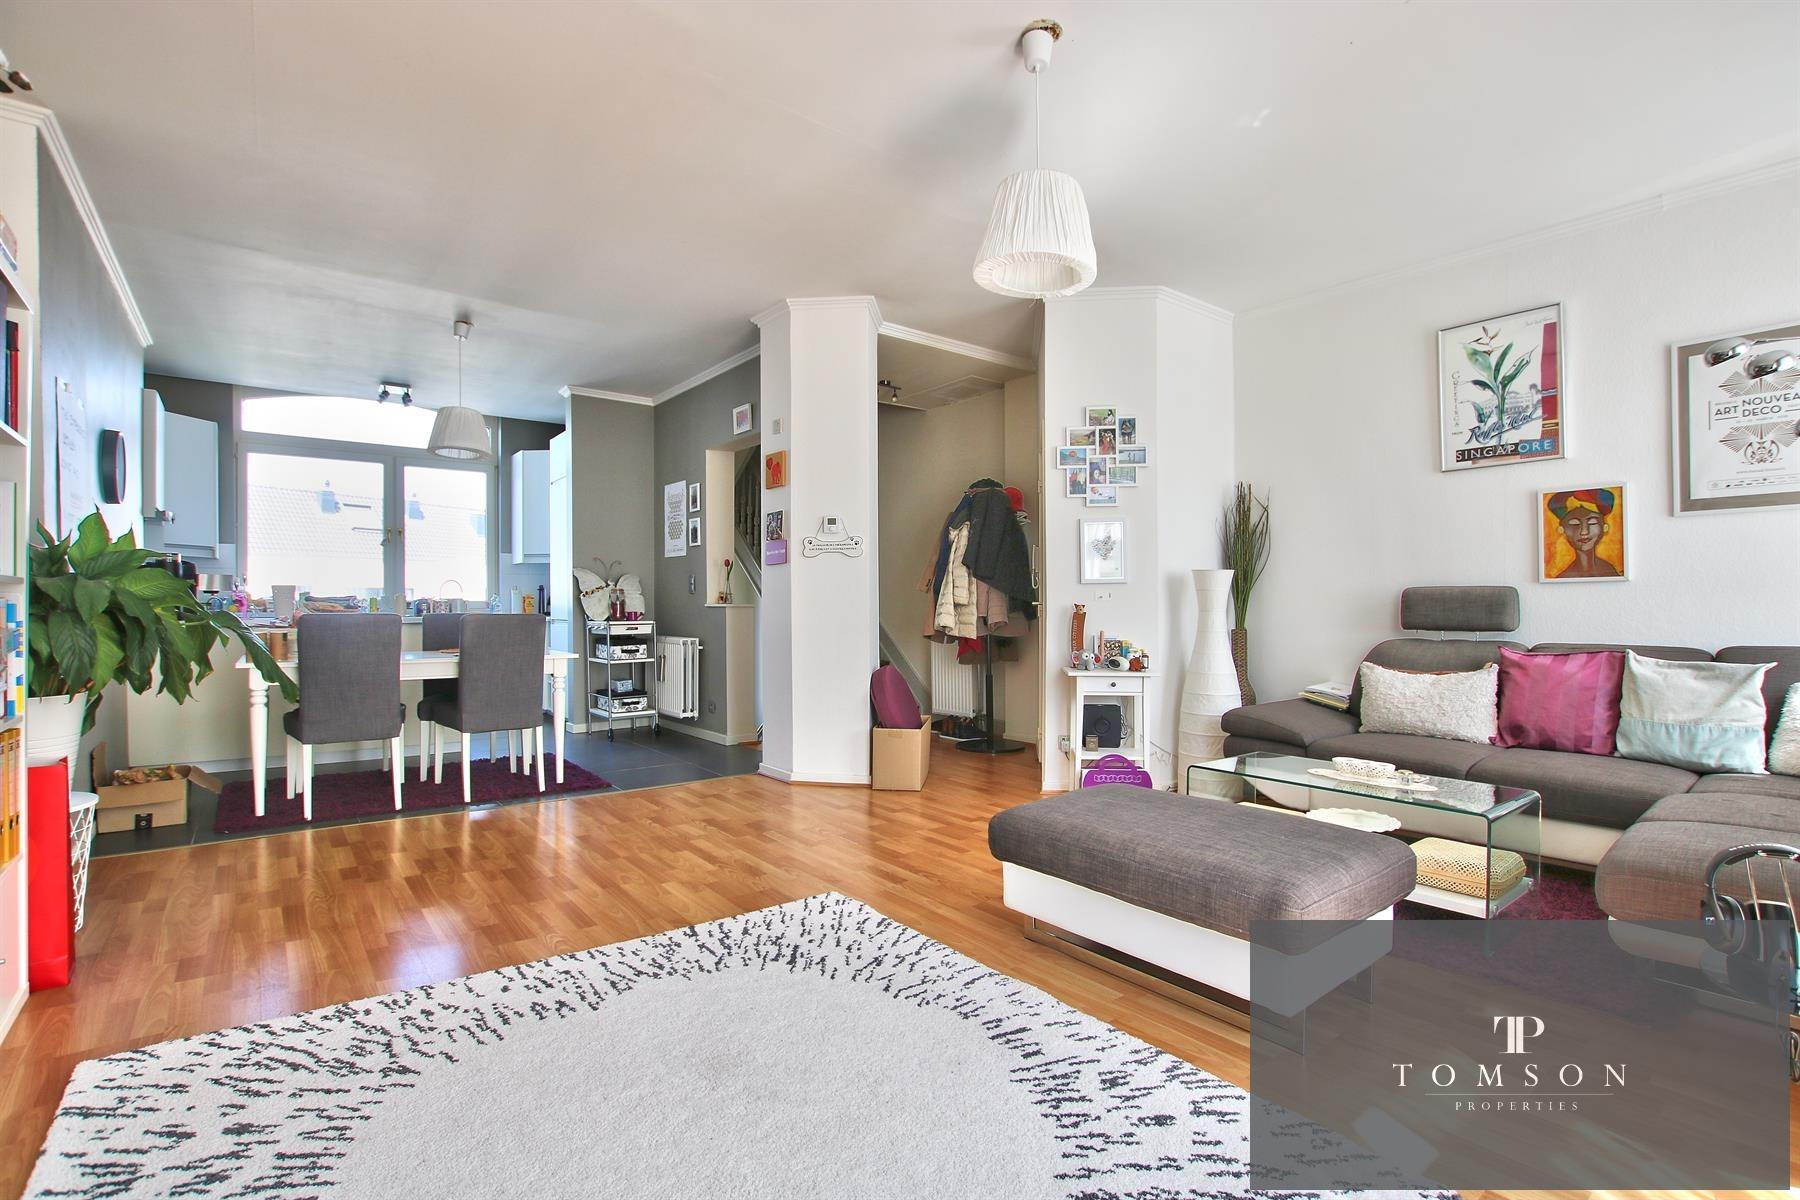 Appartement - Brussels - #4354812-1